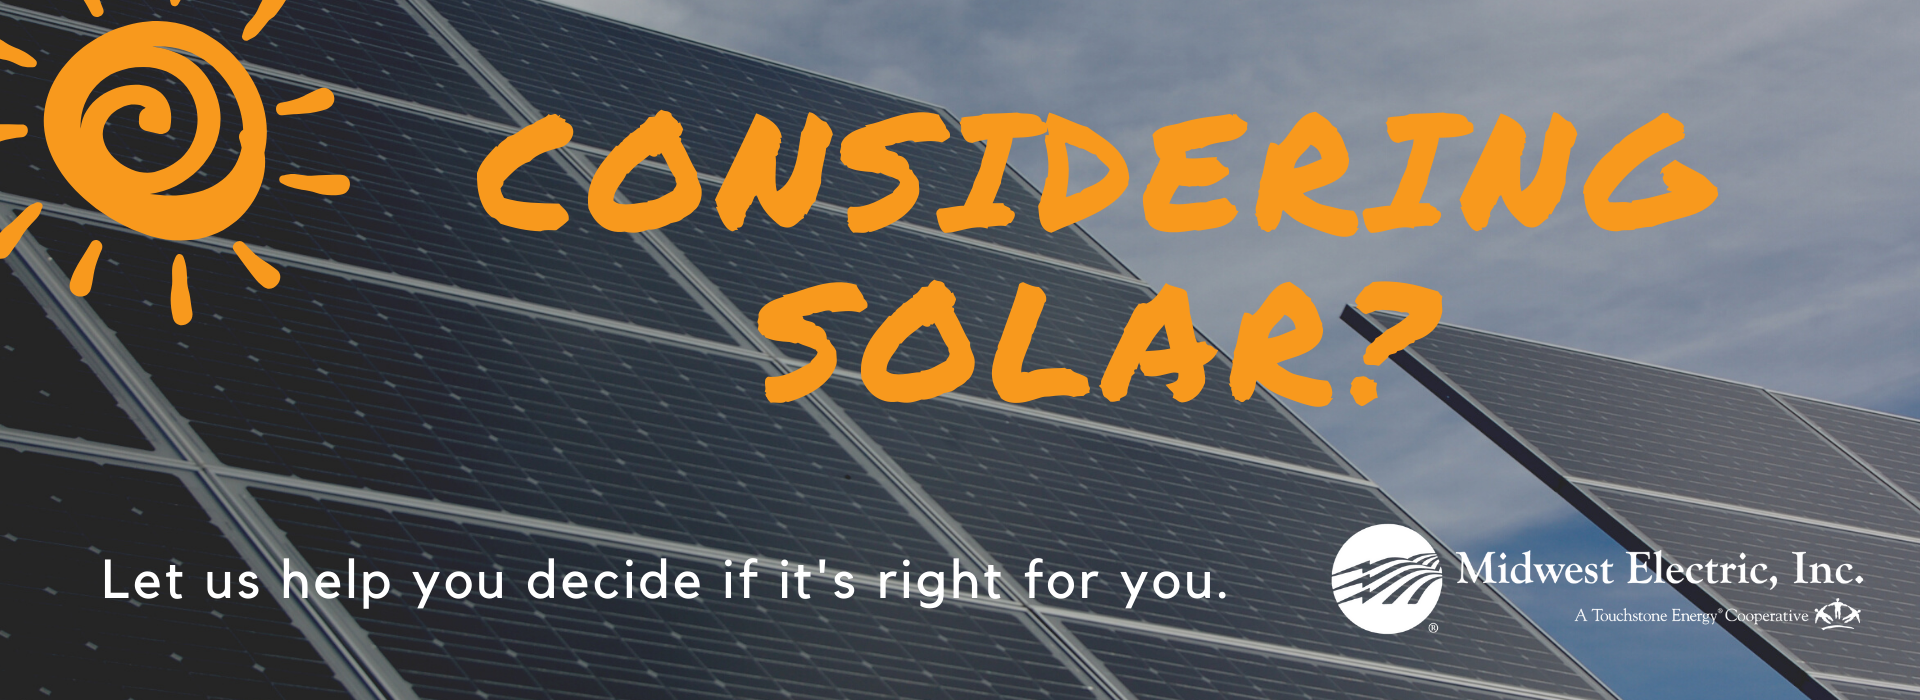 If you are considering solar, see our resources first to make sure it's the right choice for you